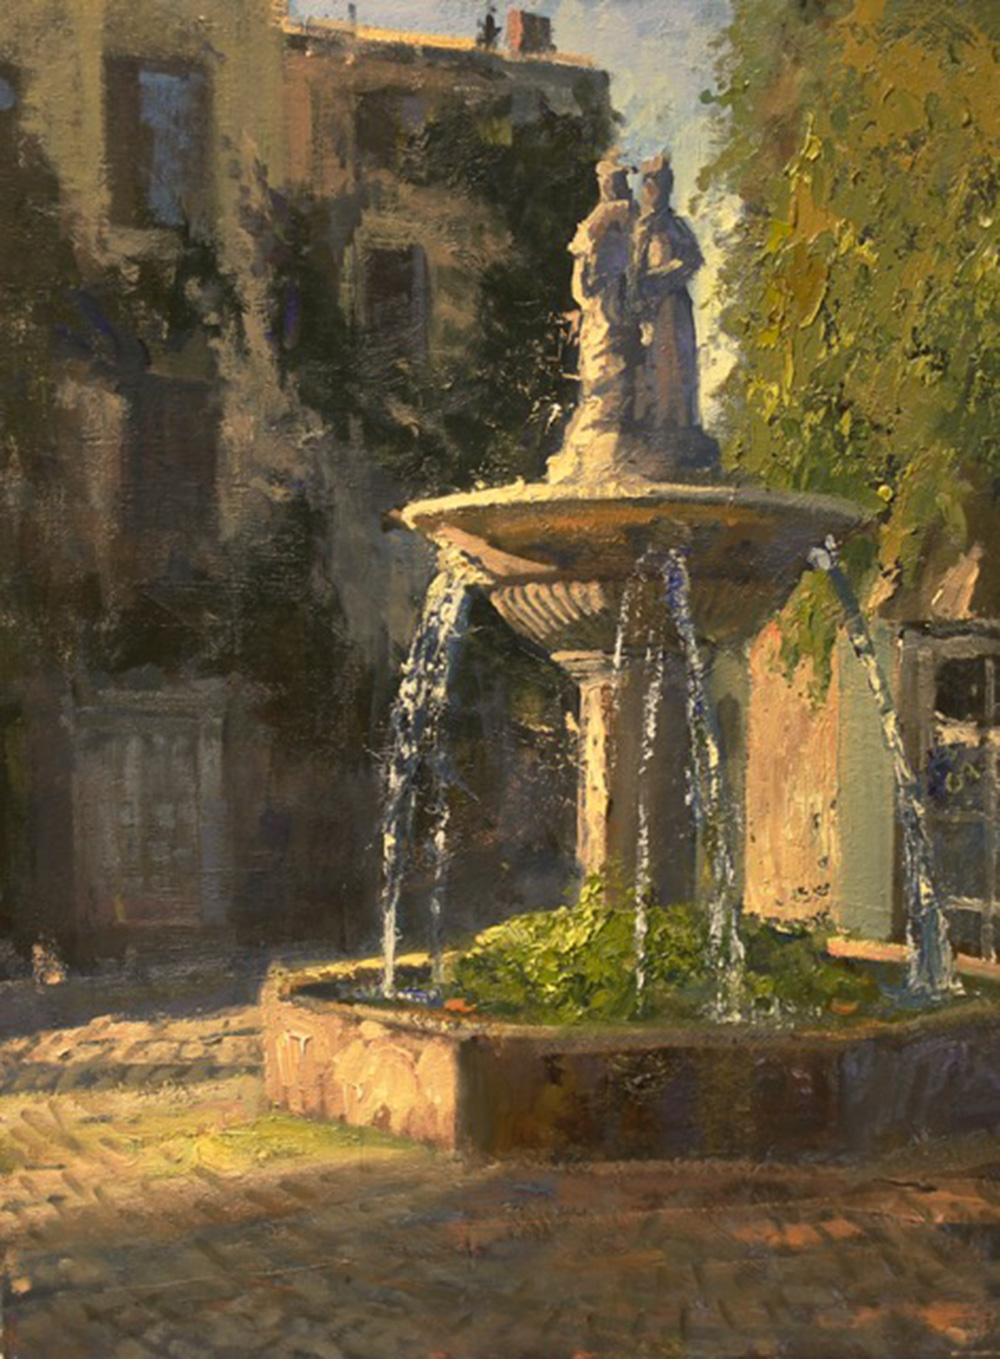 Fountain in Saignon by Roger Dale Brown, OPAM